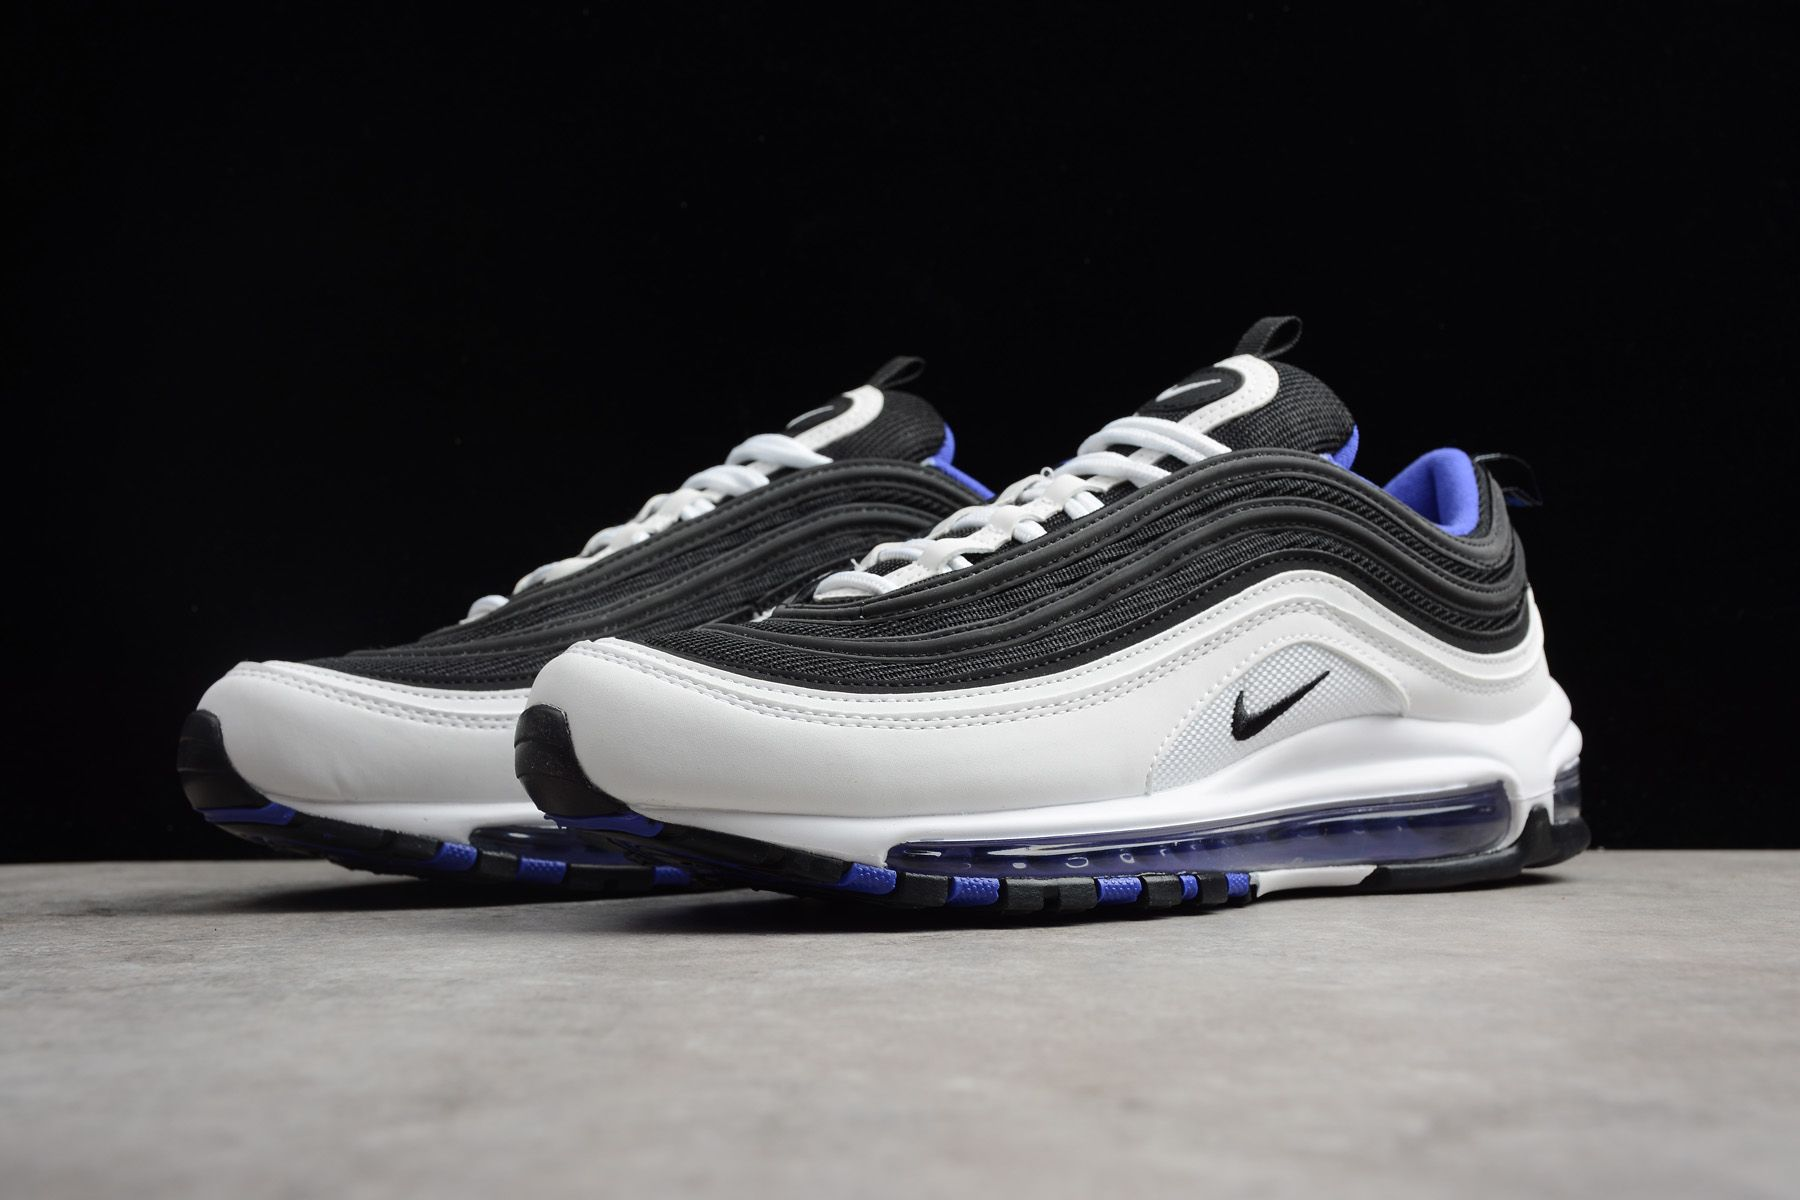 Details about Nike air max 97 Women's Sneaker 921733 005 Black White Shoes Sneakers New